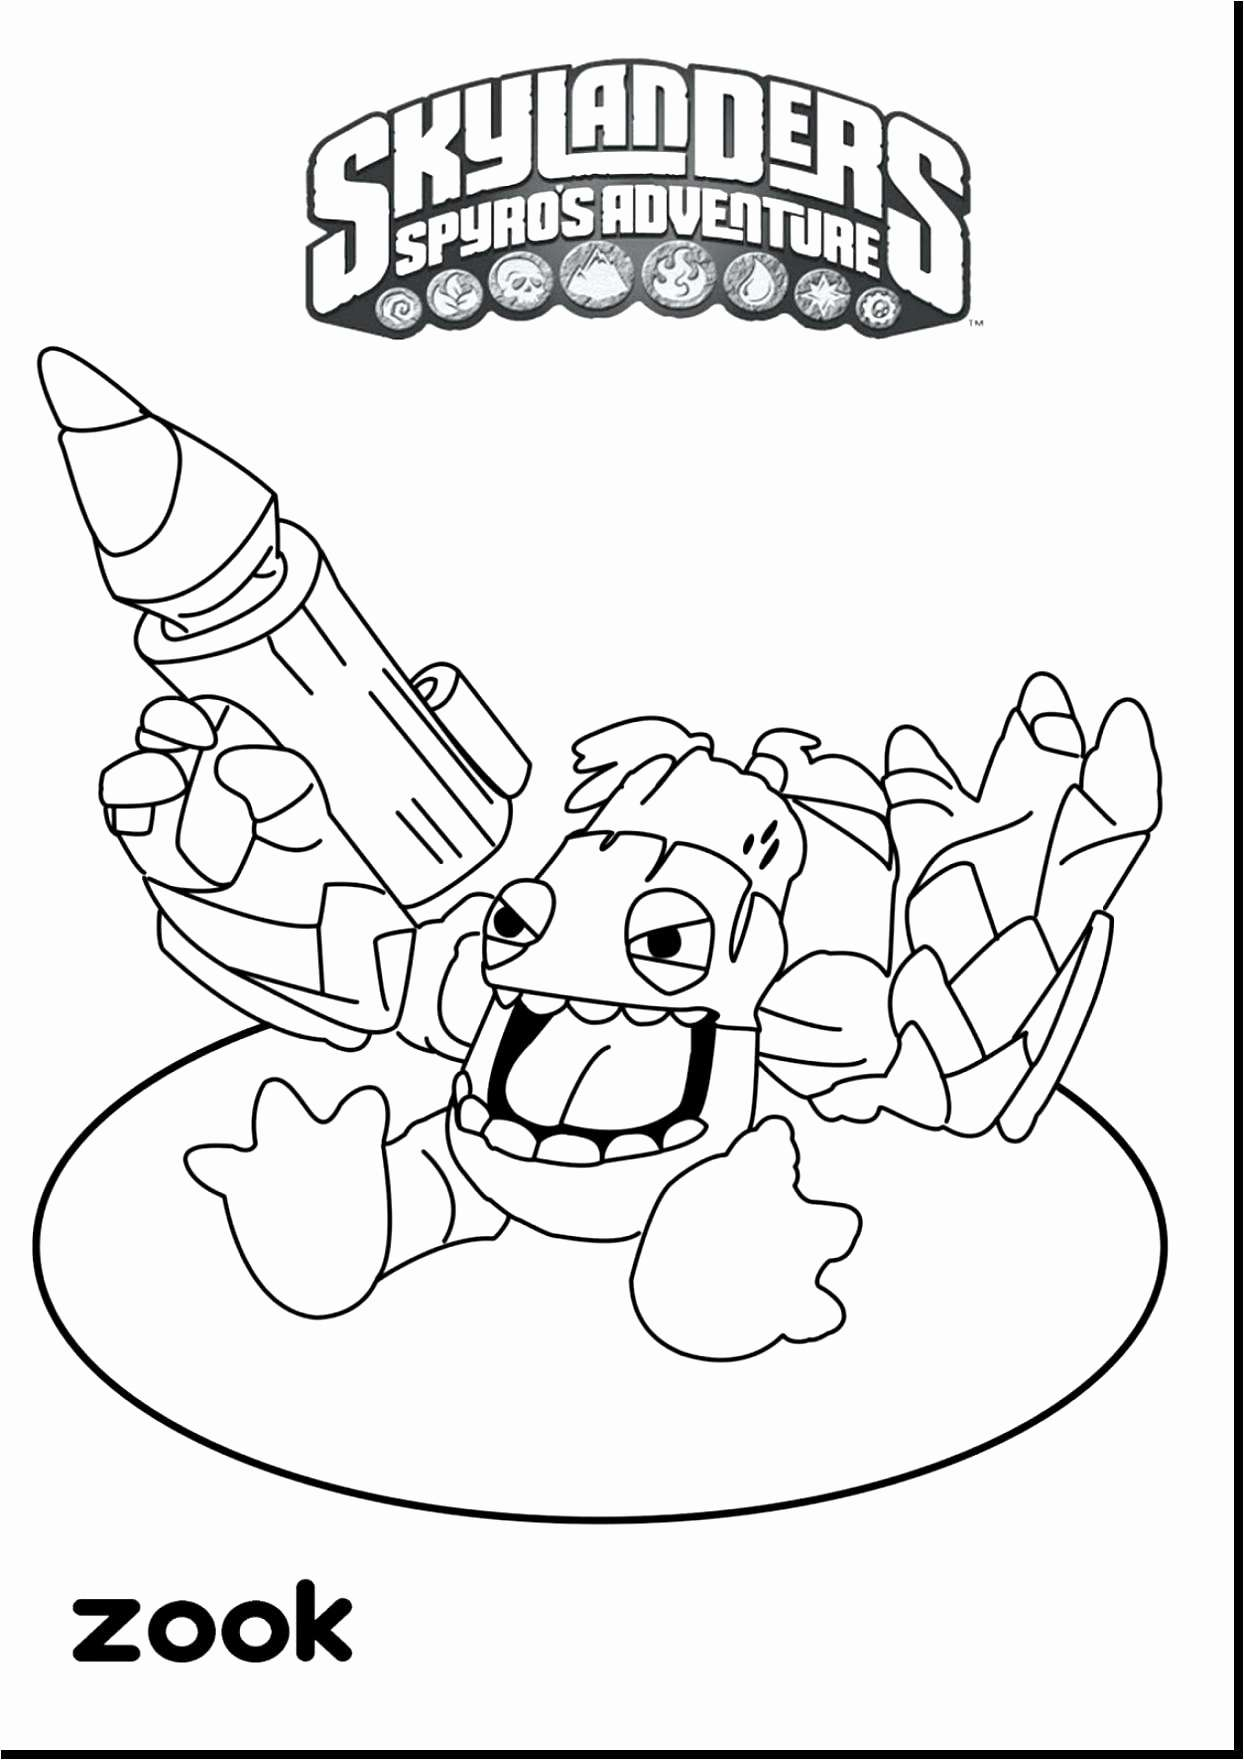 coloring pages mario Download-Mario Color Pages Free Printable Christmas Coloring Page 5-l